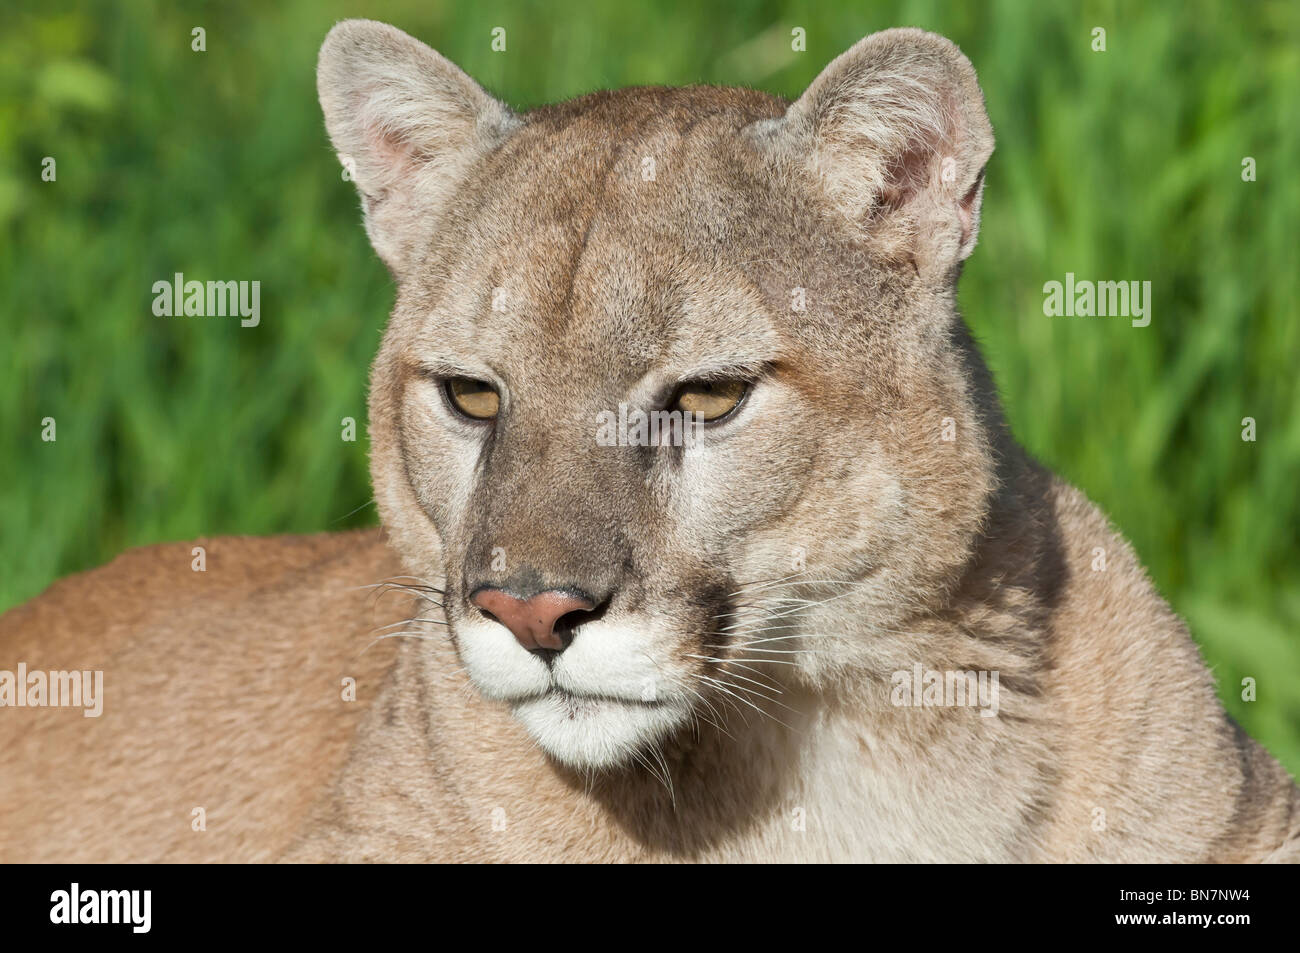 Puma Argentina Stock Photos Puma Argentina Stock Images Alamy